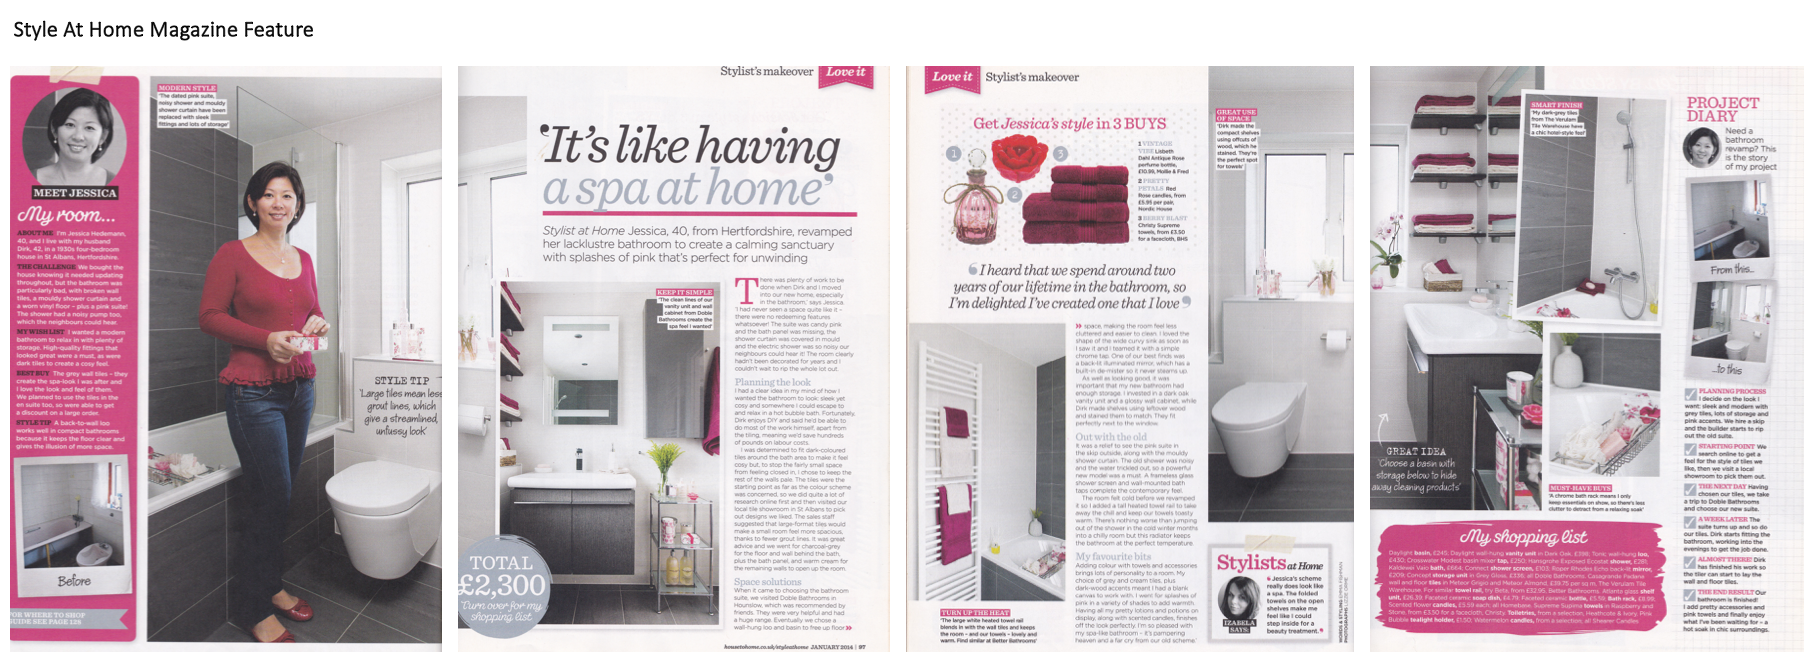 Style at Home magazine feature on home styling